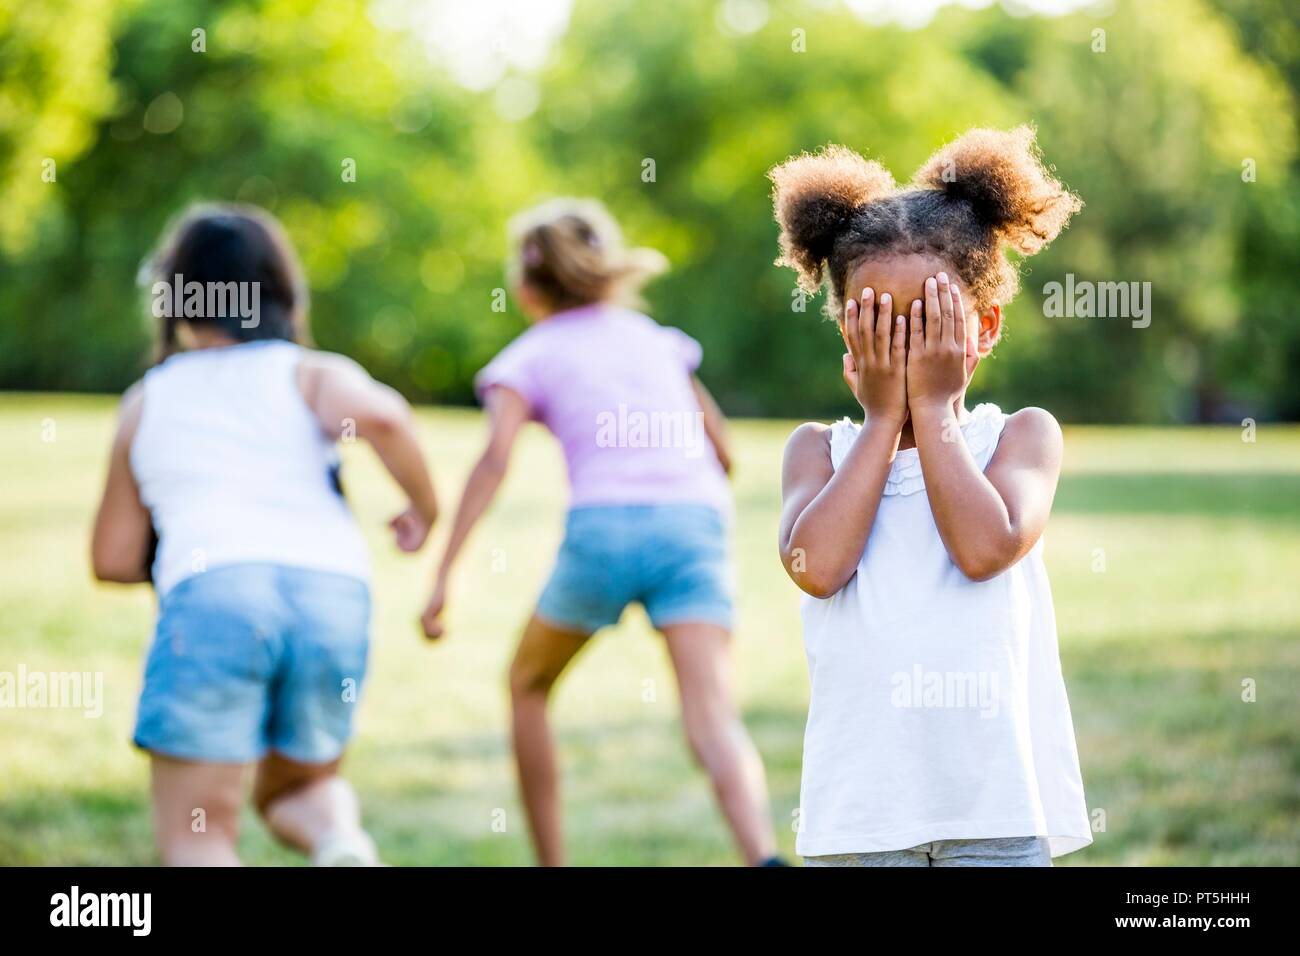 Girls playing hide and seek game in park. - Stock Image